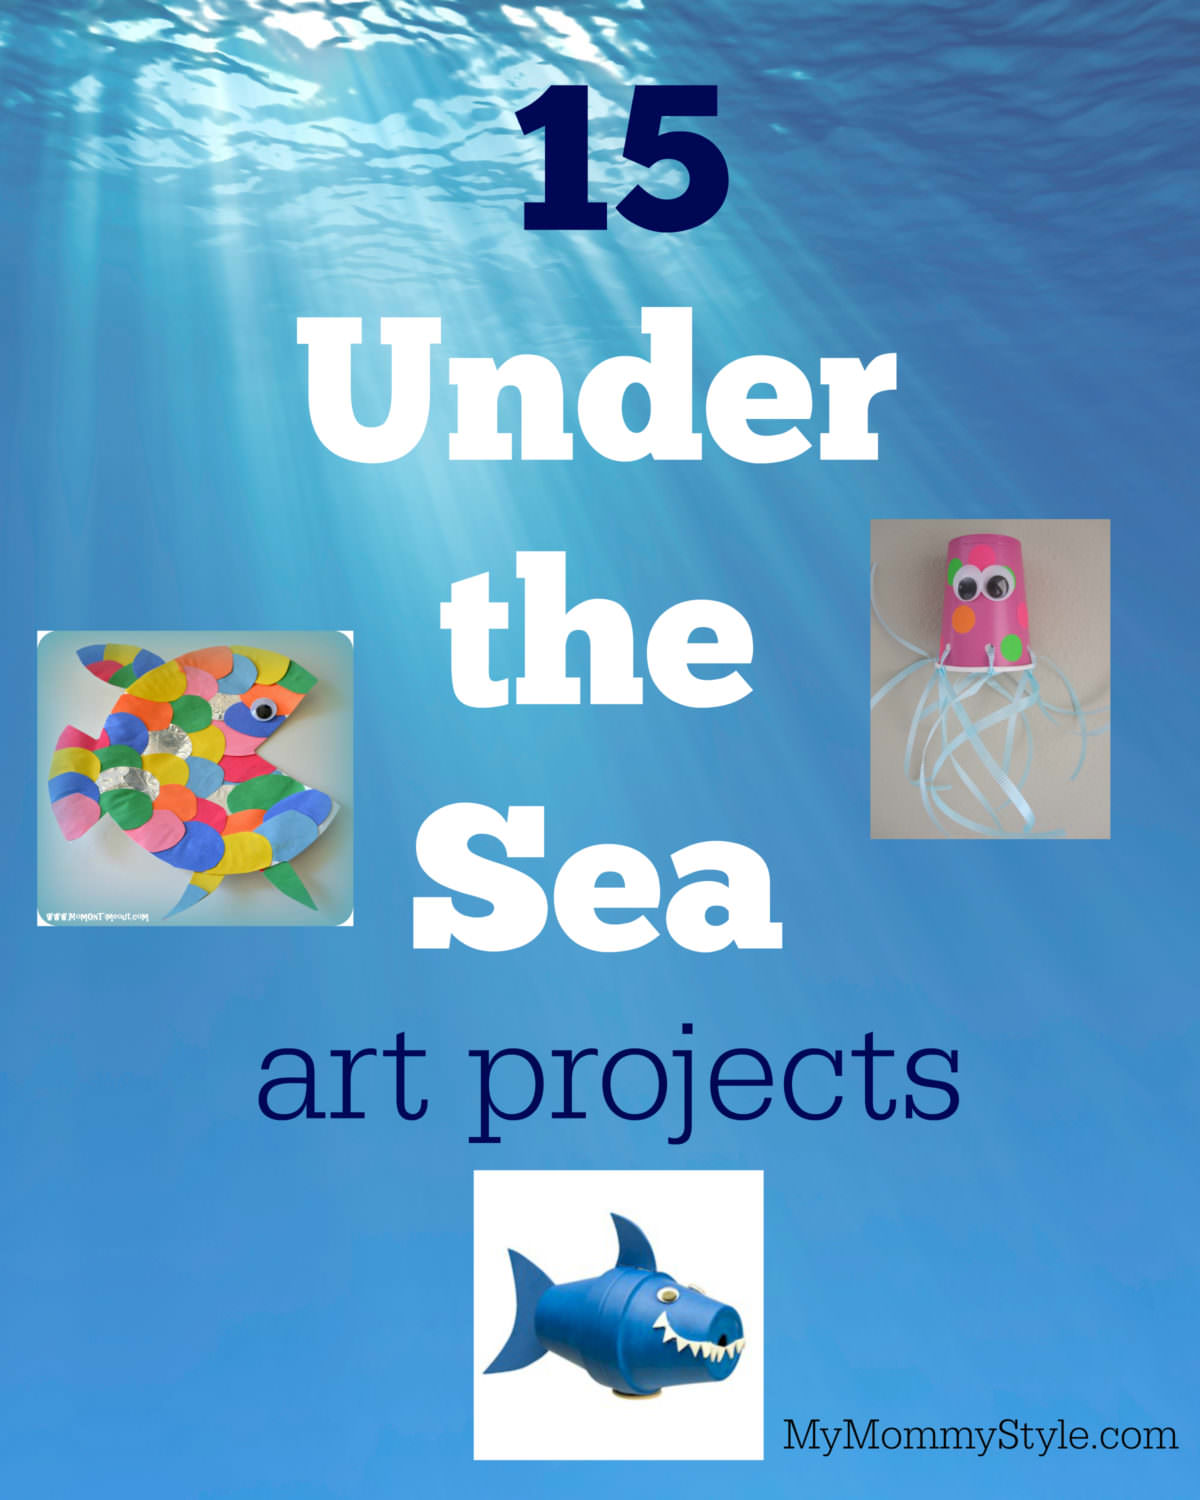 Under The Sea Craft Projects